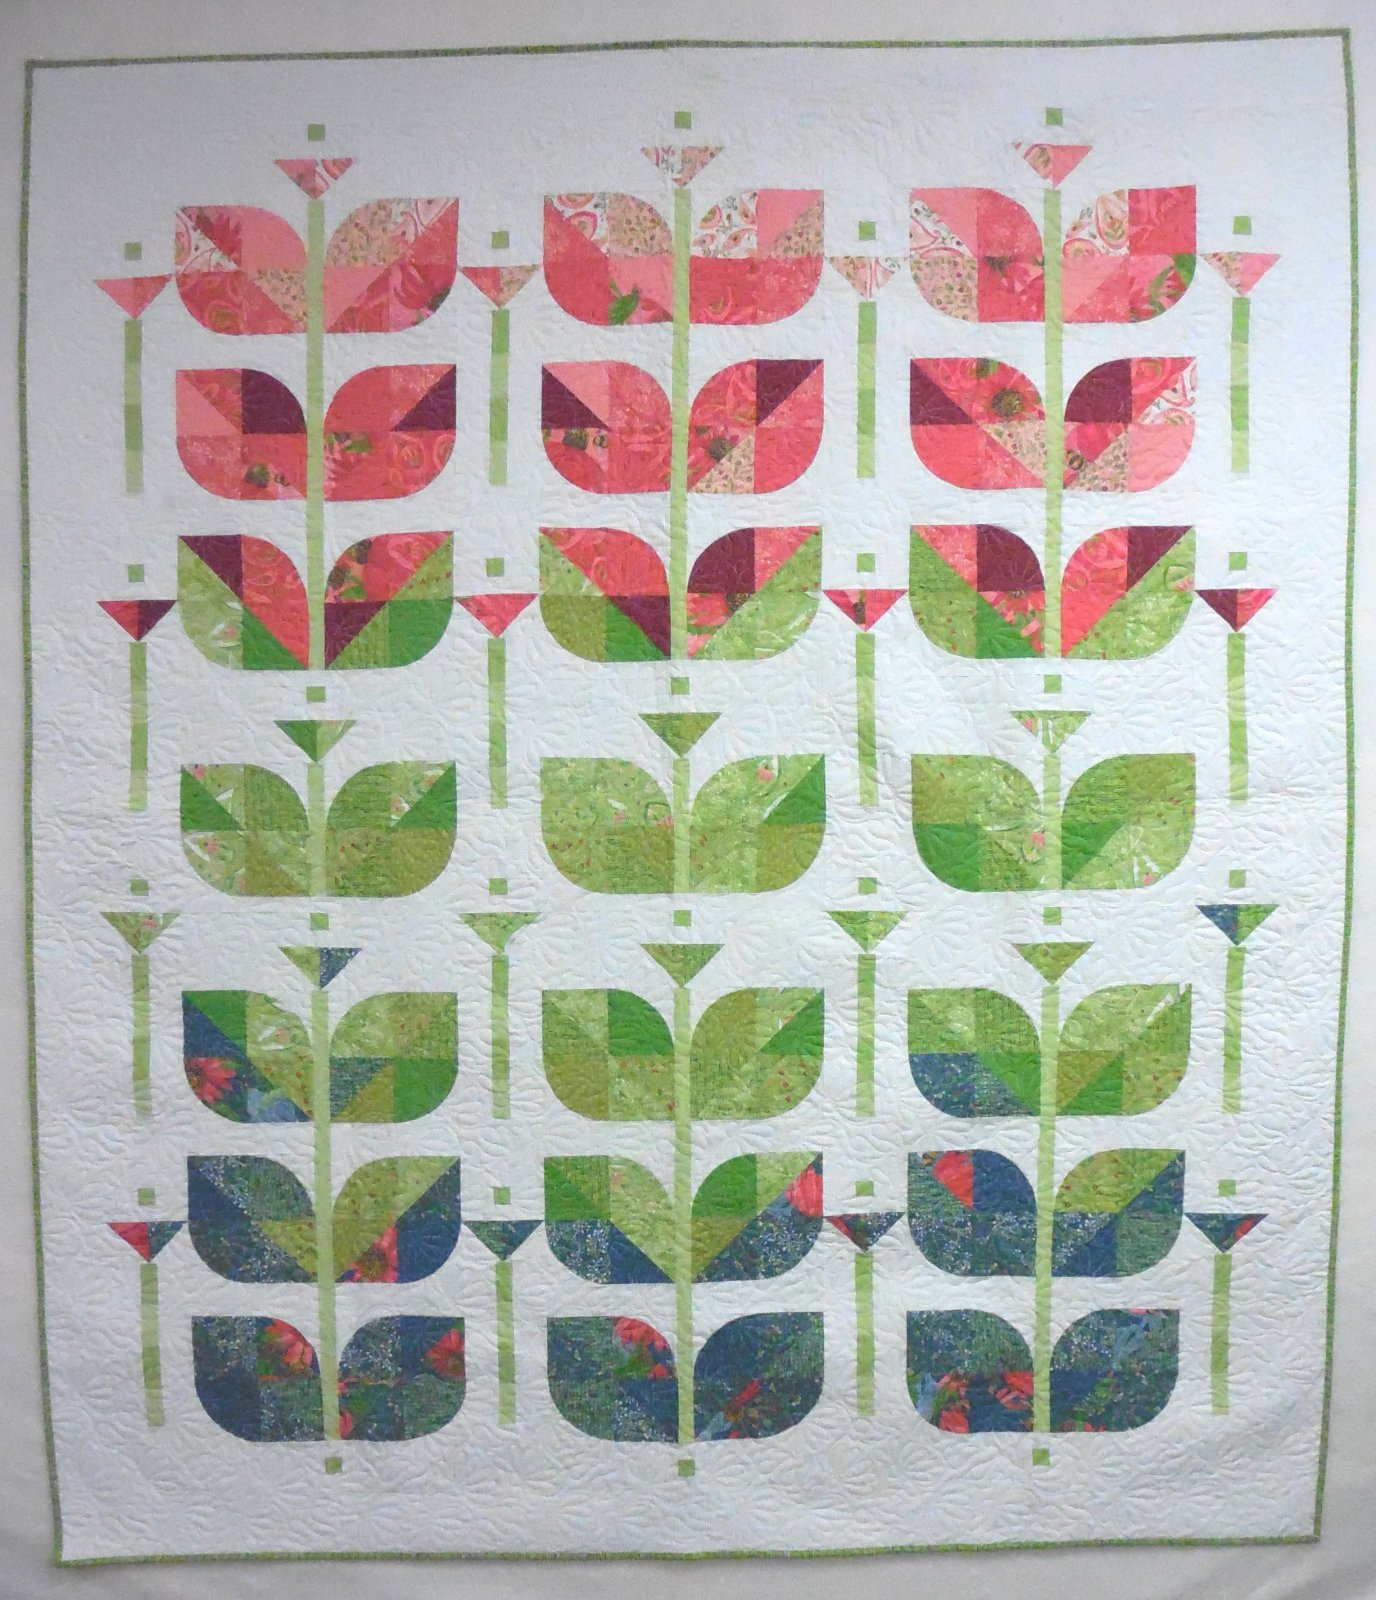 Beanstalk Finished Quilt - Twin Size - 79 x 90